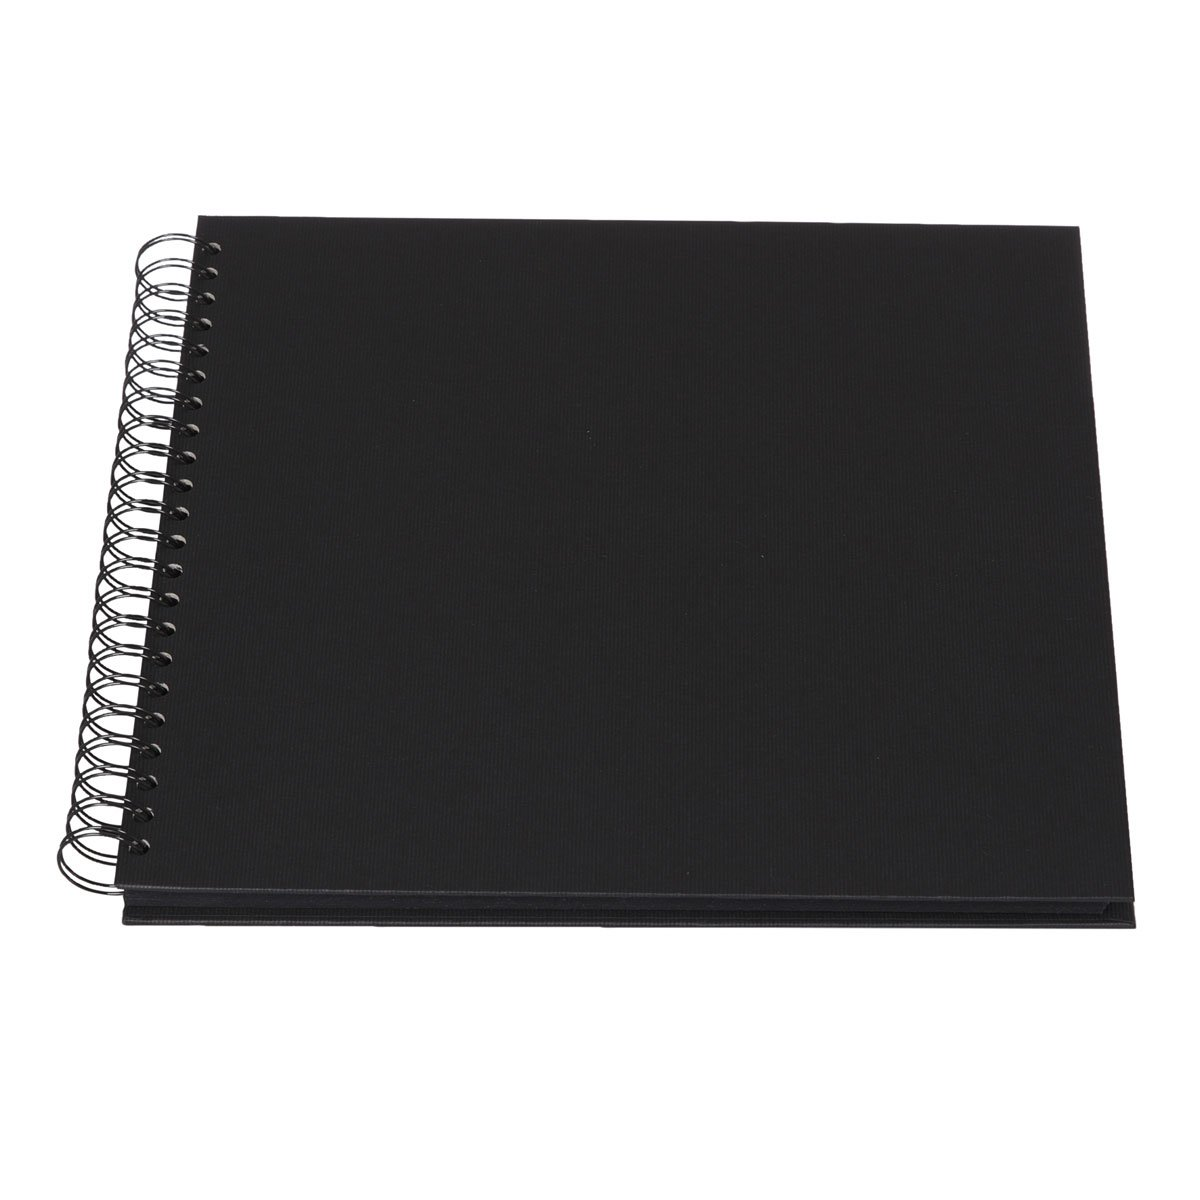 Rossler Soho 290 x 290mm Wiro Bound Photo Album - Black (60 Sheets)